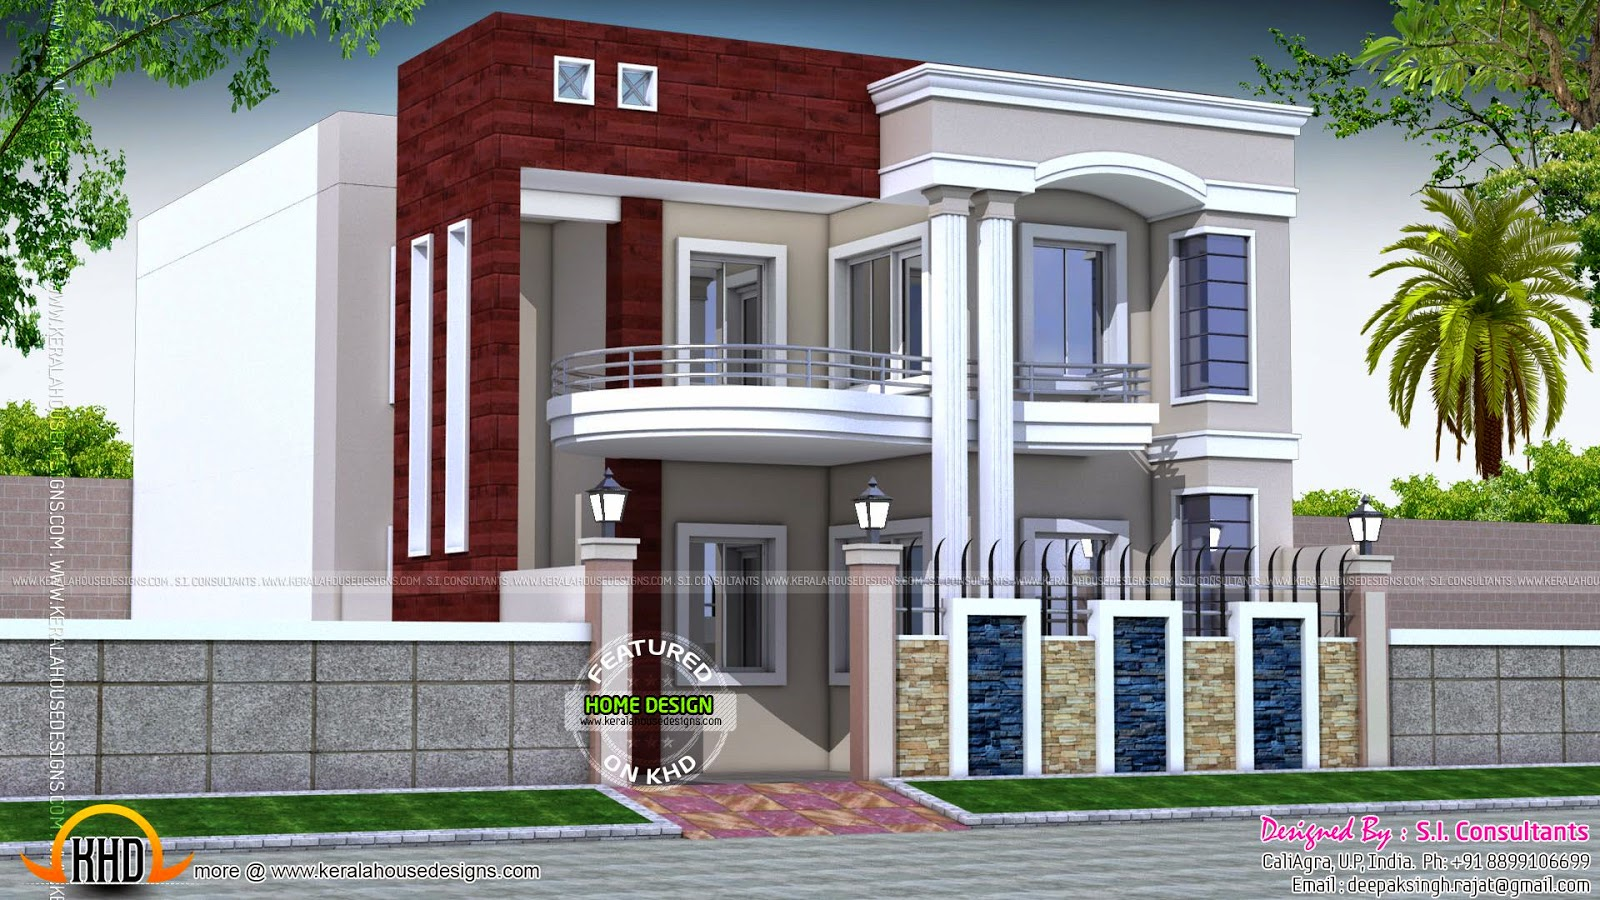 House design in north india kerala home design and floor for Indian house photo gallery